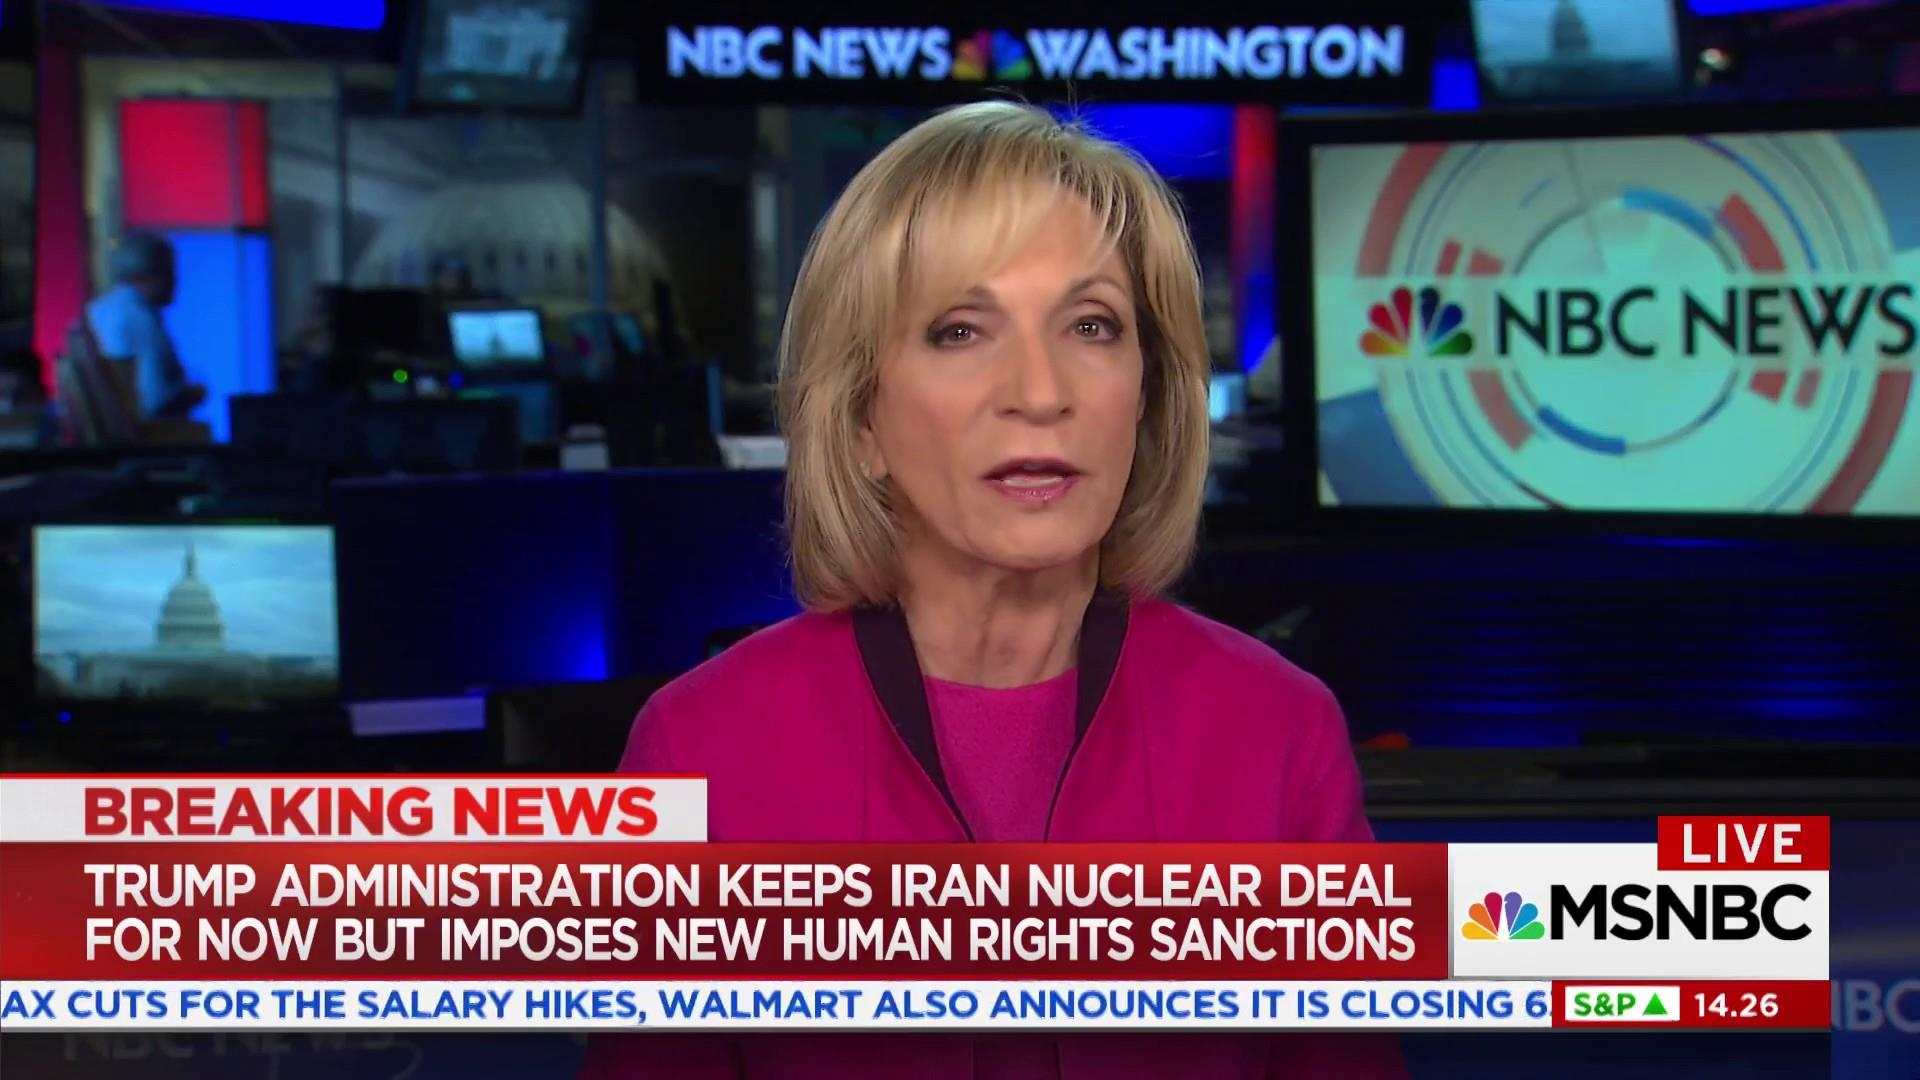 Trump keeps Iran nuclear deal for now, imposes new sanctions